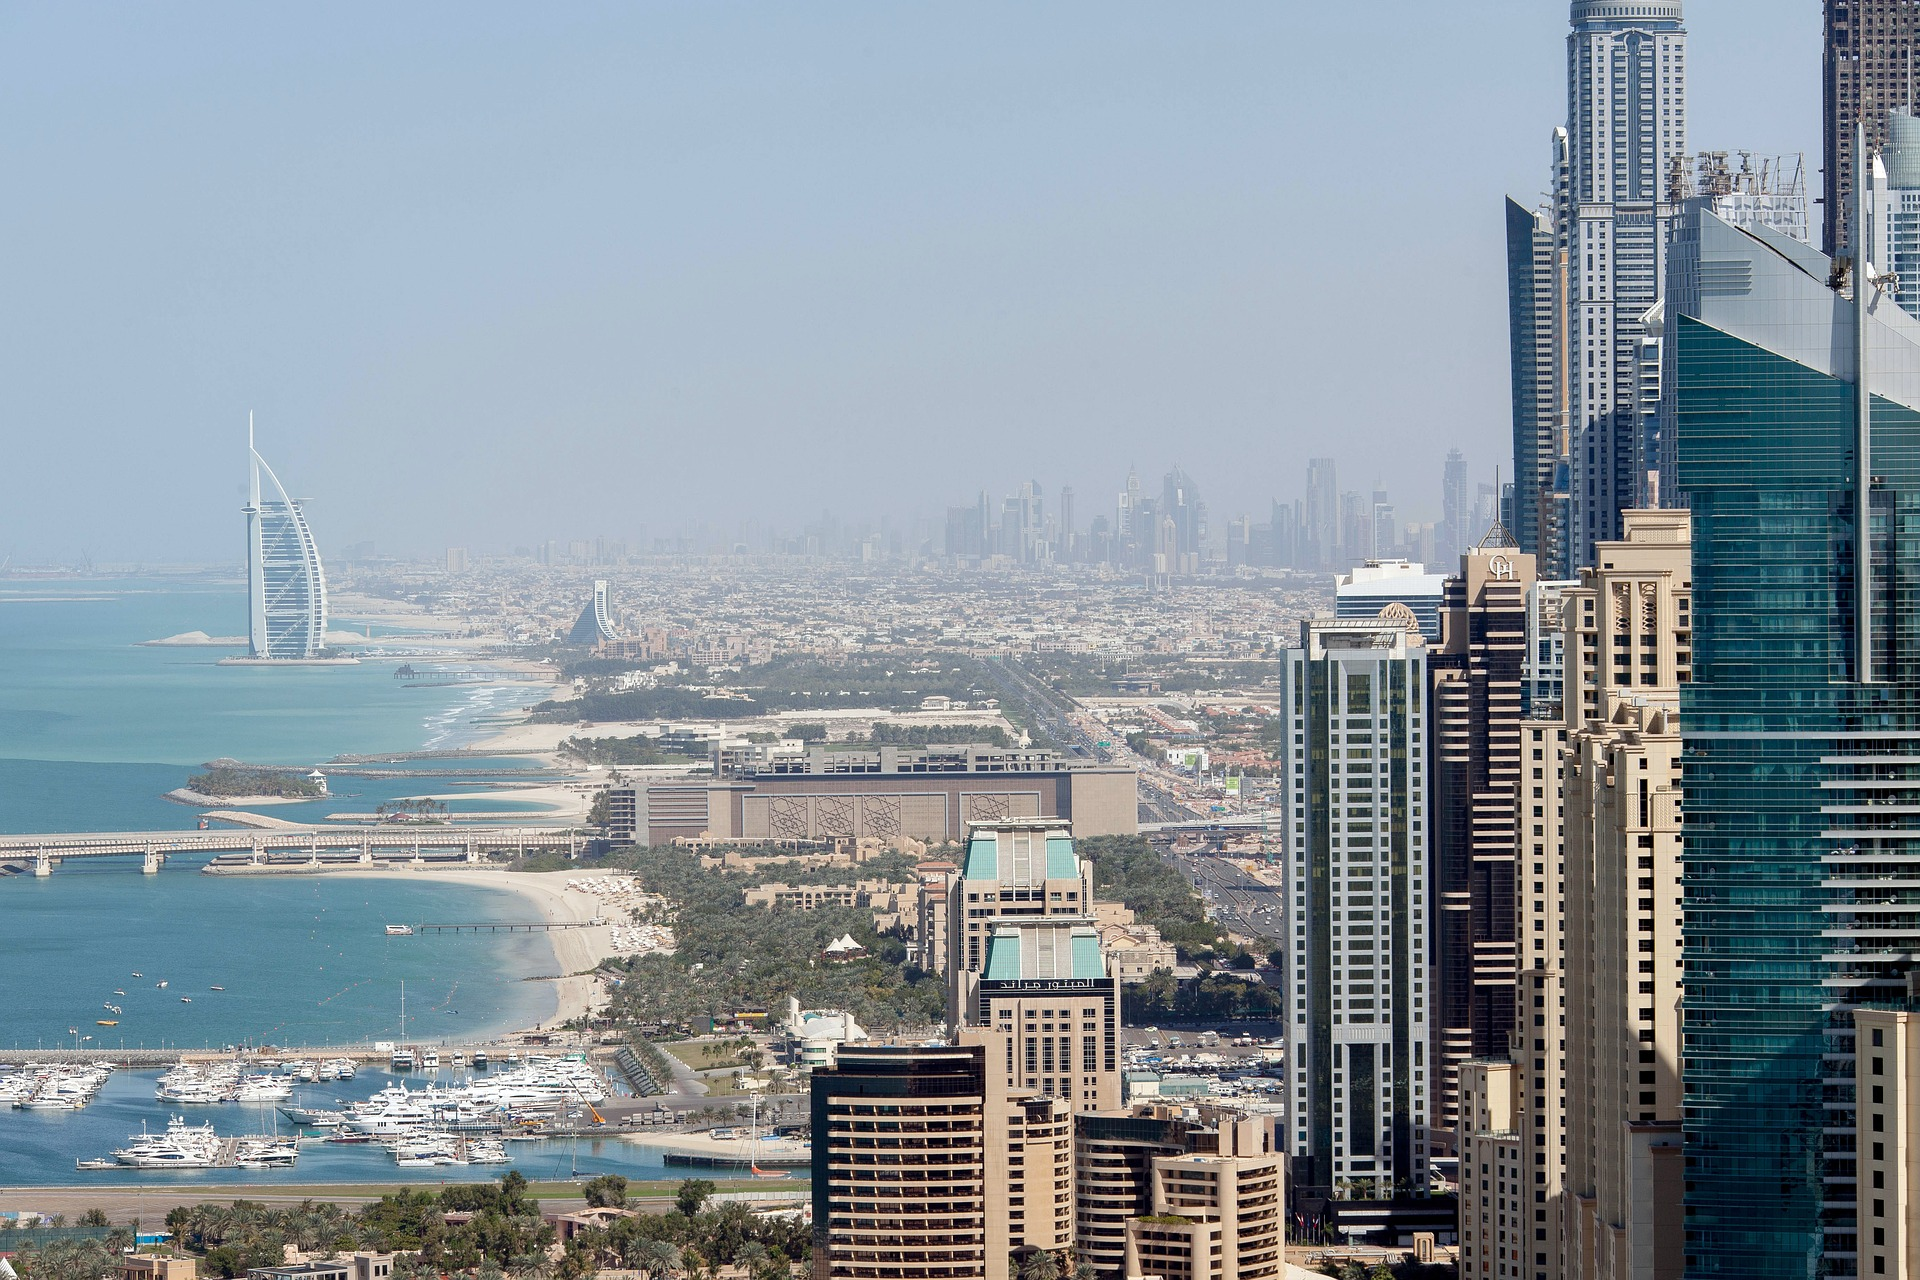 Dubai featured sixth on the list in mid-2019